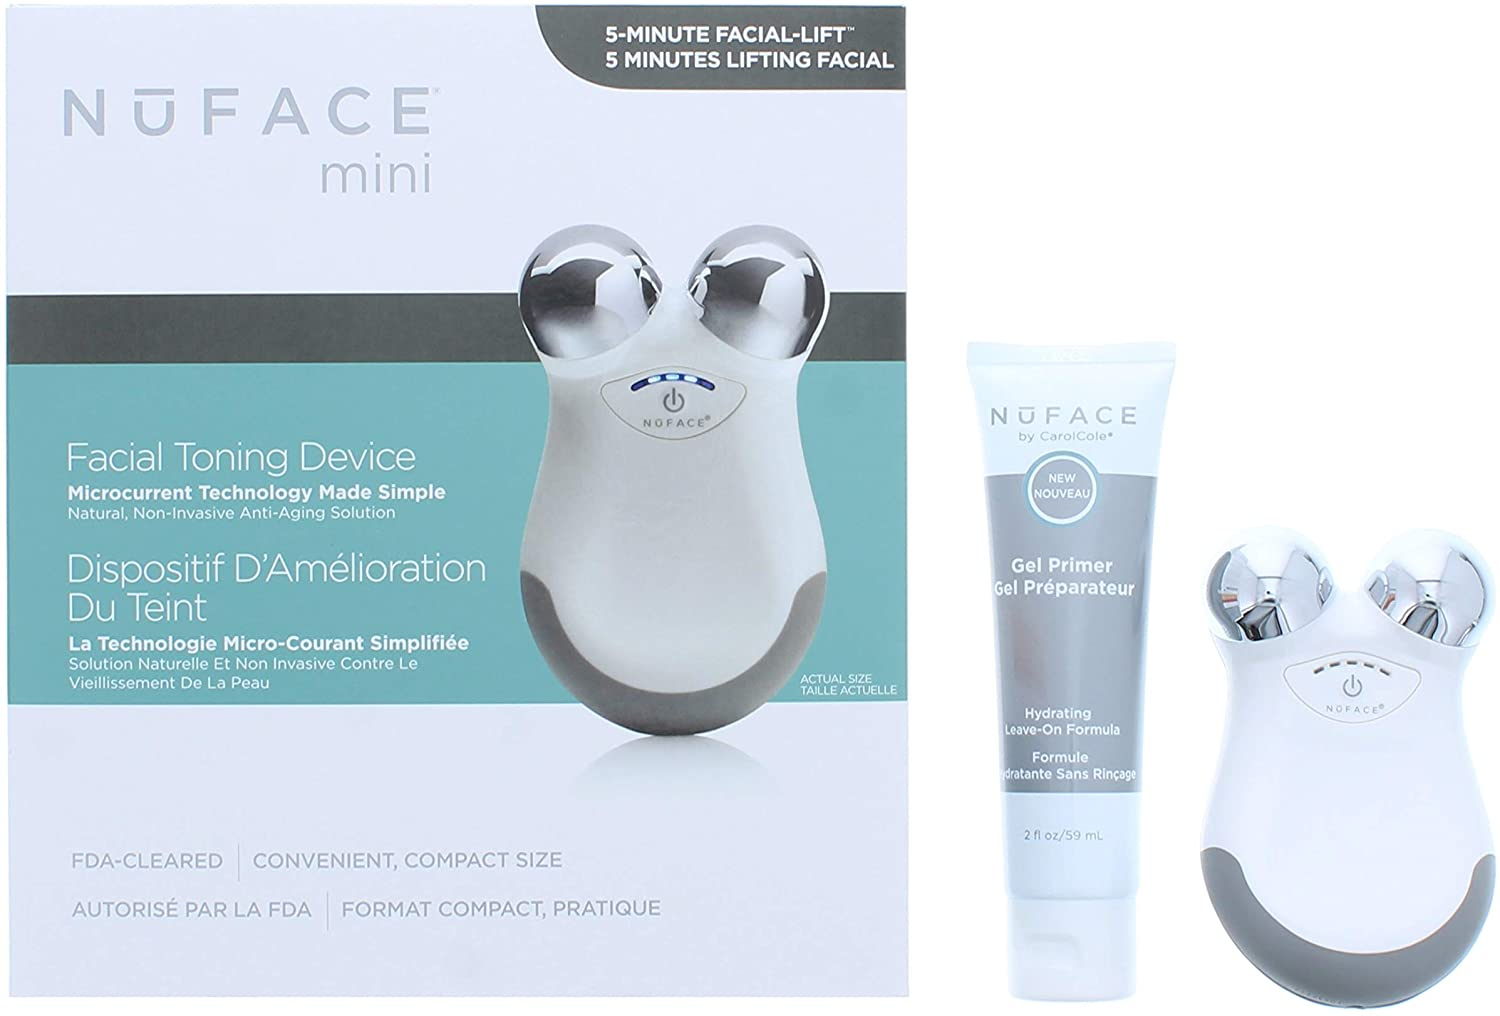 Nuface-Mini-Facial-Toning-Device